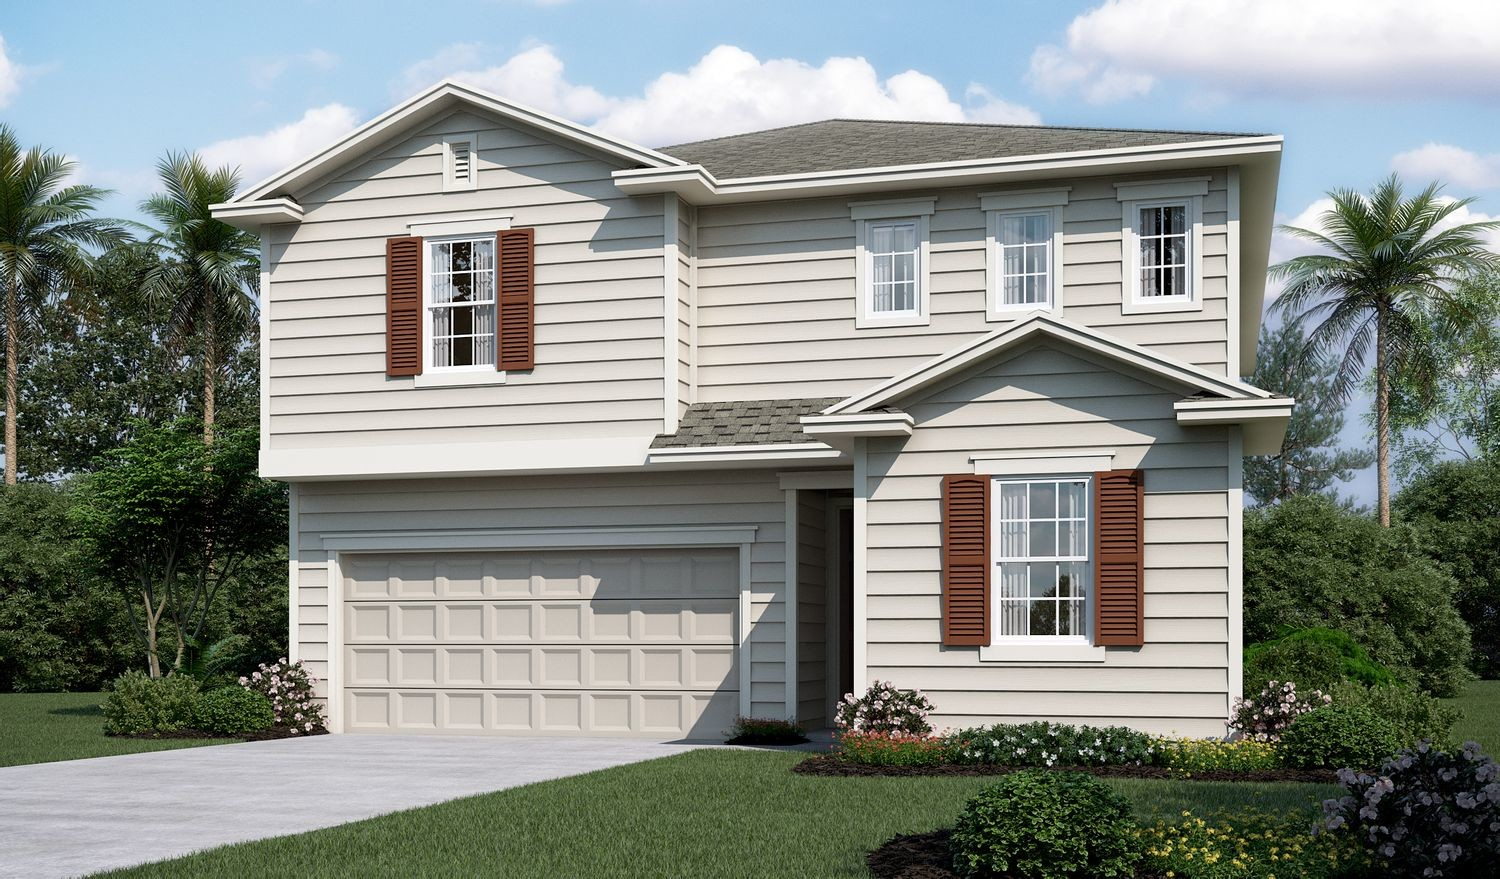 Move In Ready New Home In GreyHawk Community